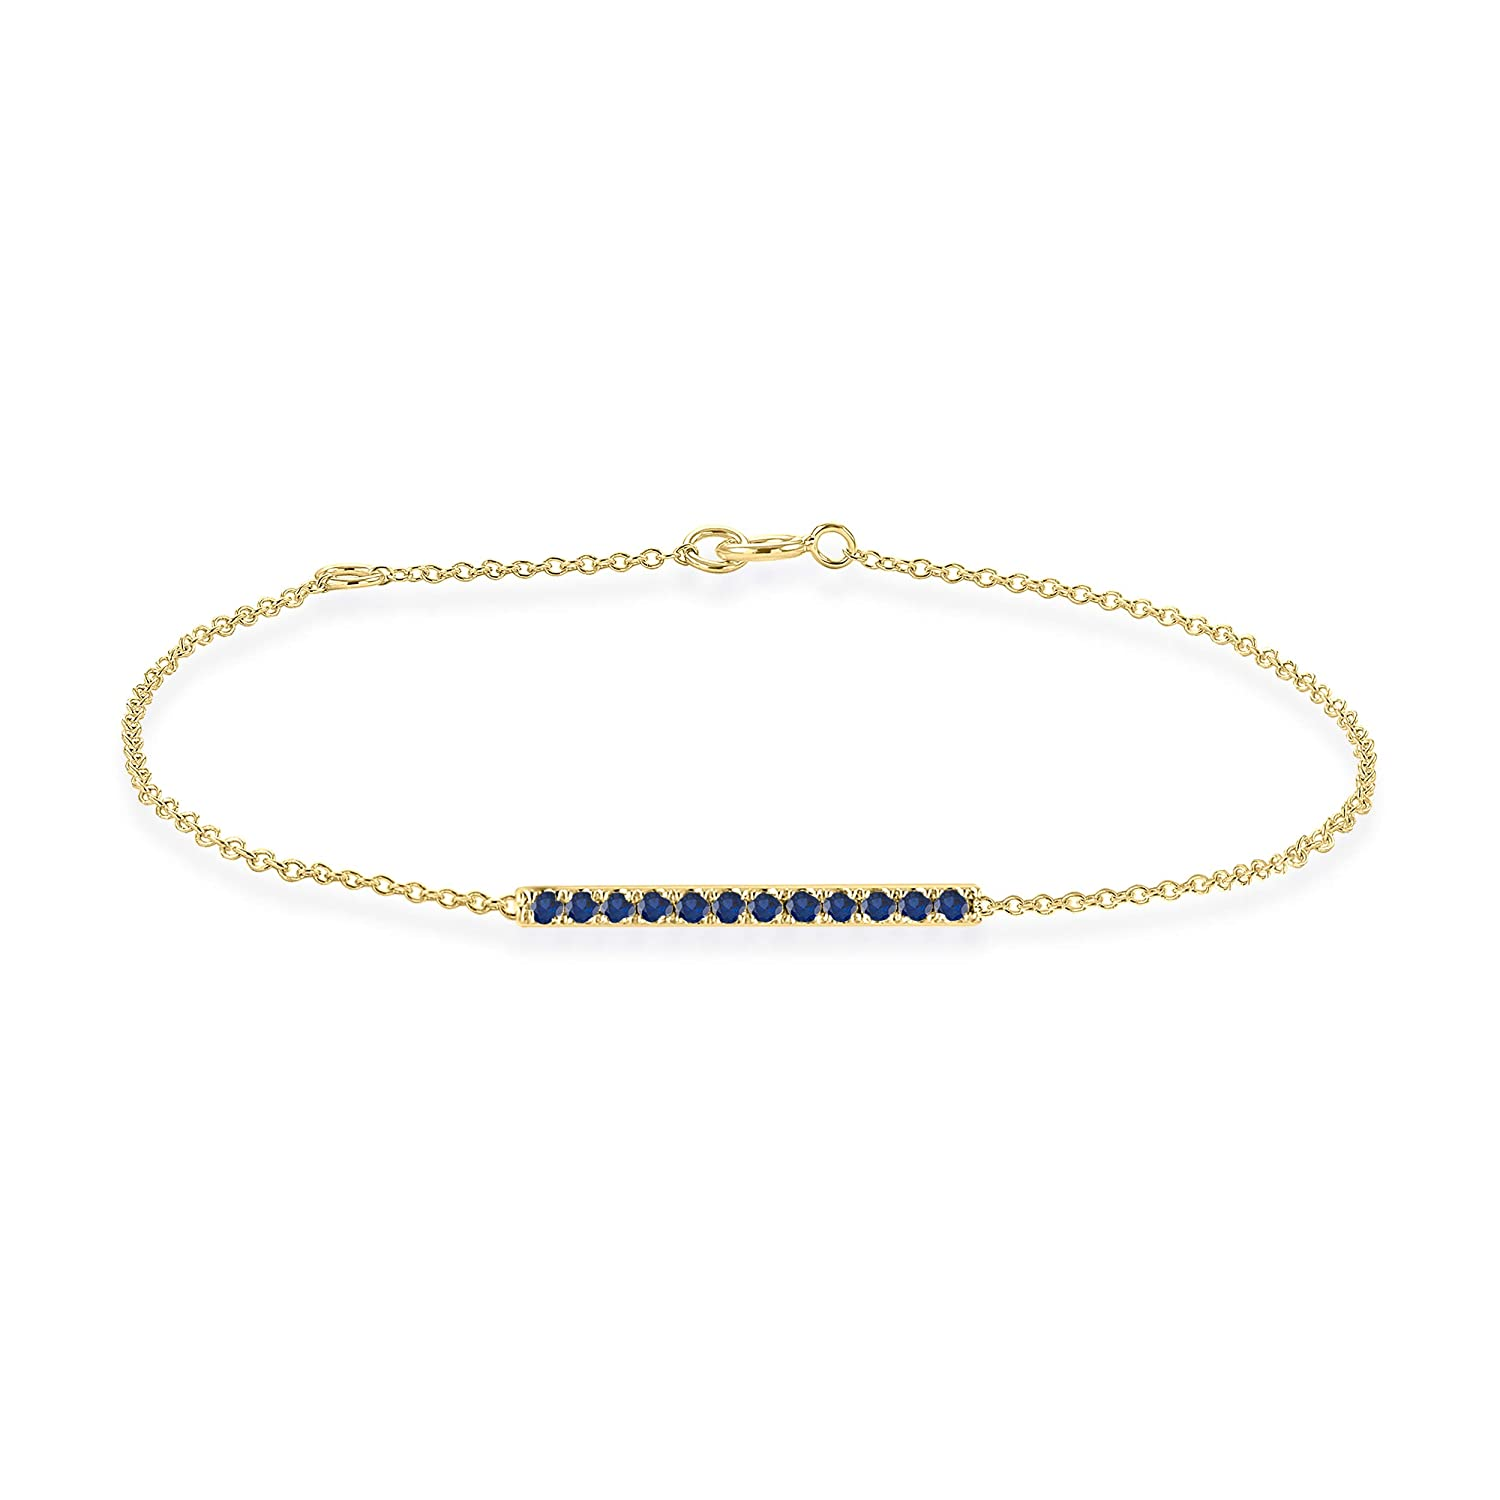 Rare Earth Diamond Jewellery Round Cut Blue Sapphire Horizontal Bar Bracelet in 14K Gold Over Sterling Silver BR000537A-ALL-BS-925-R-6